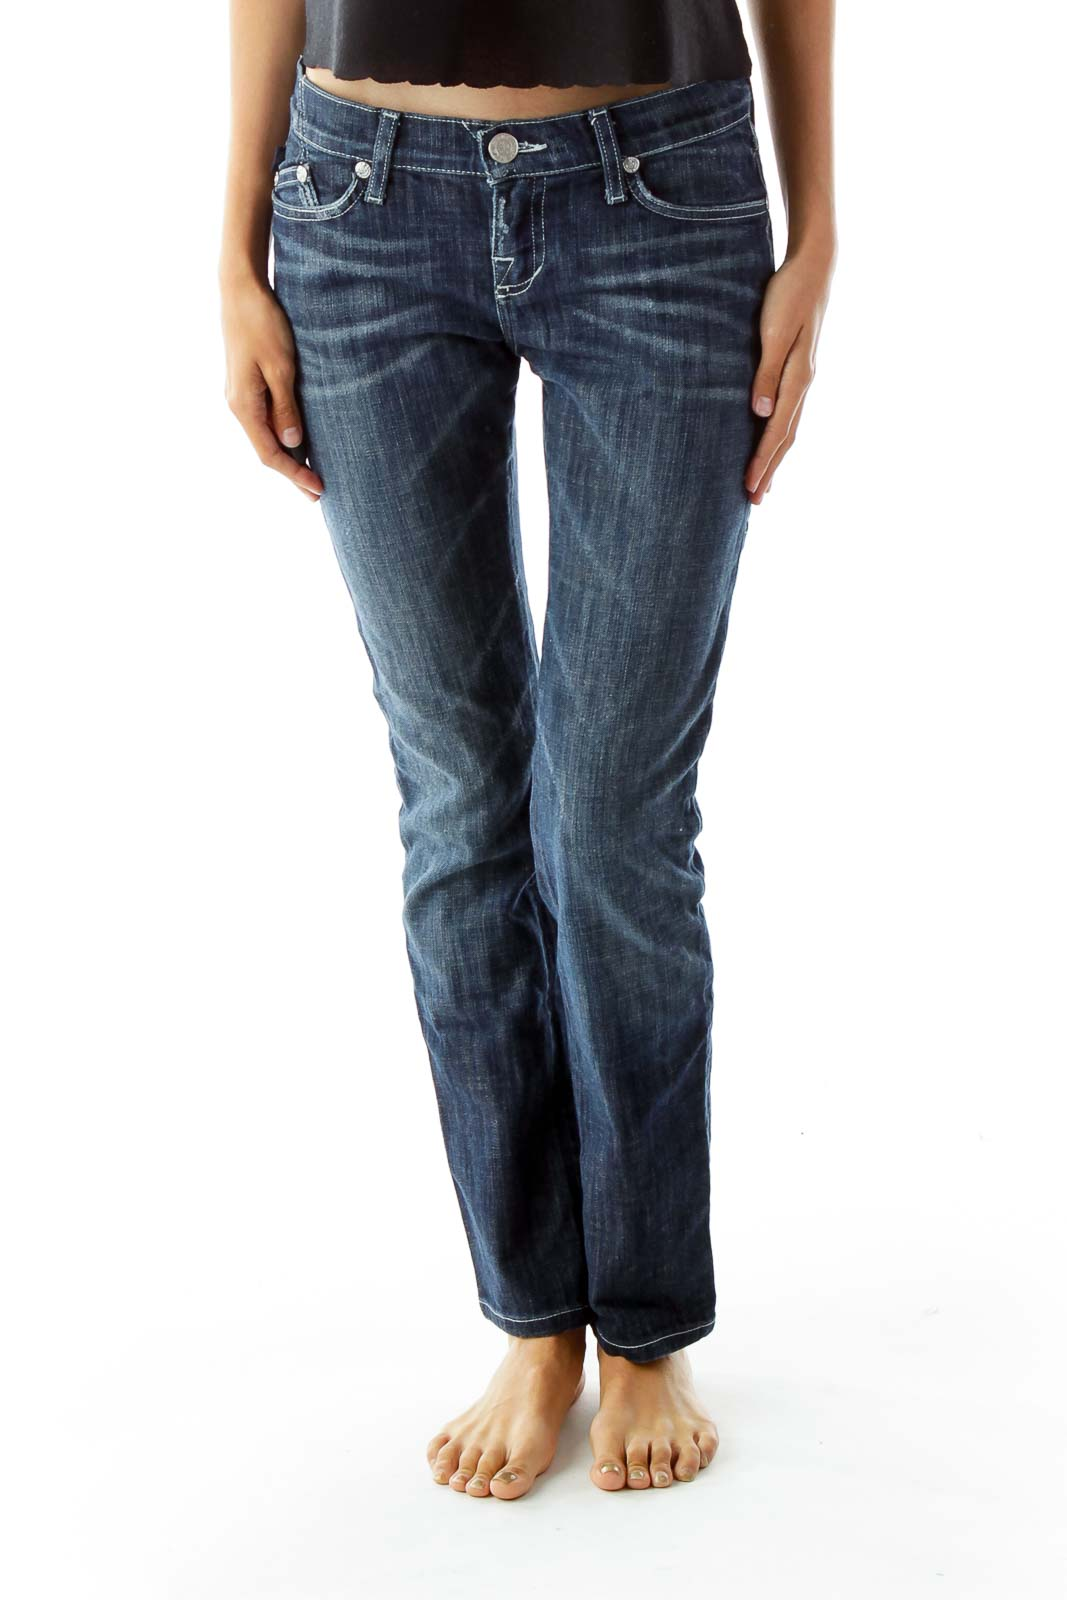 Blue Straight-Leg Faded Jeans Front